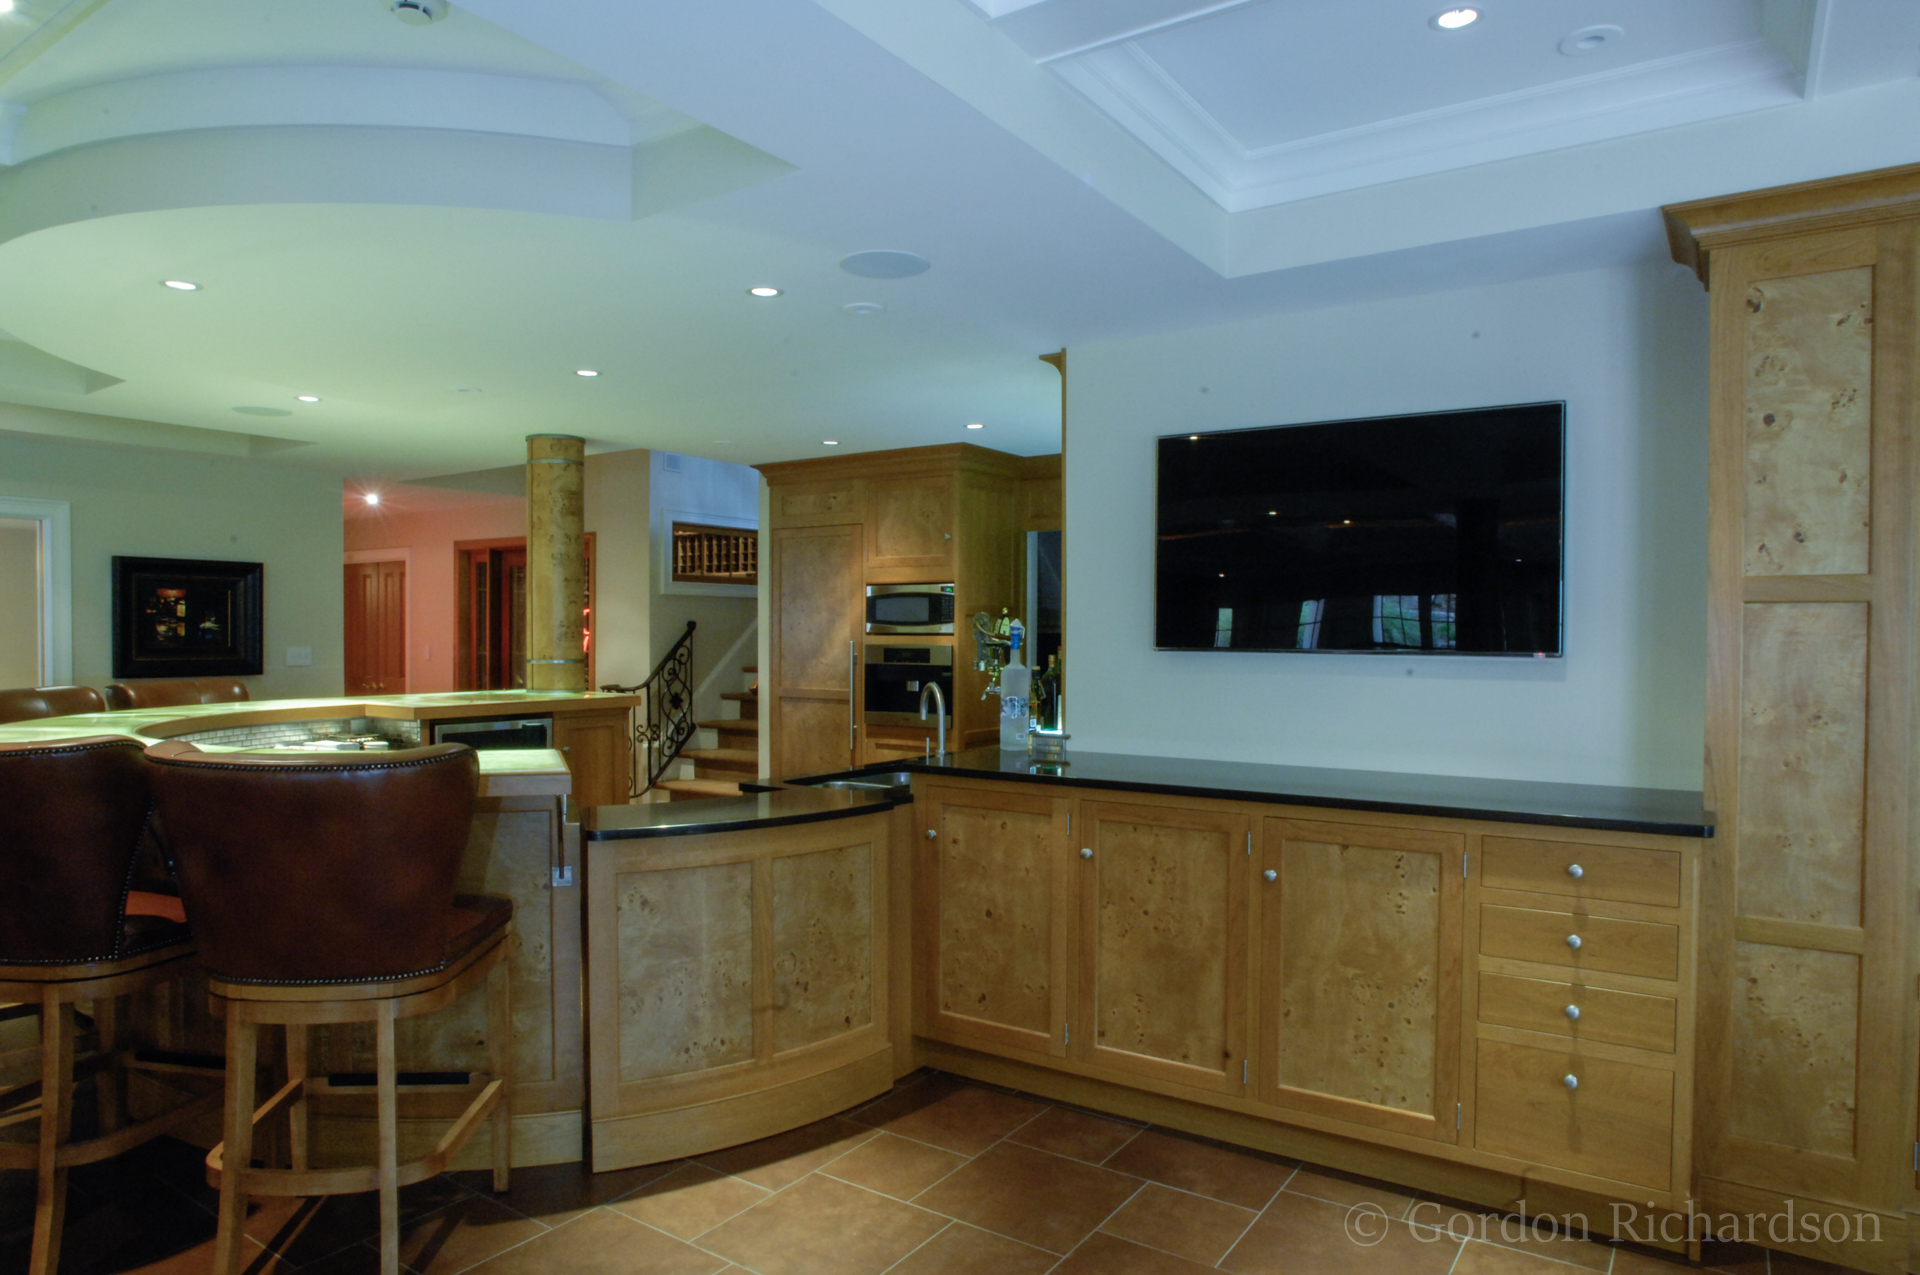 oberholtzer-wp, Author at Oberholtzer Custom Cabinetry - Page 2 of 2